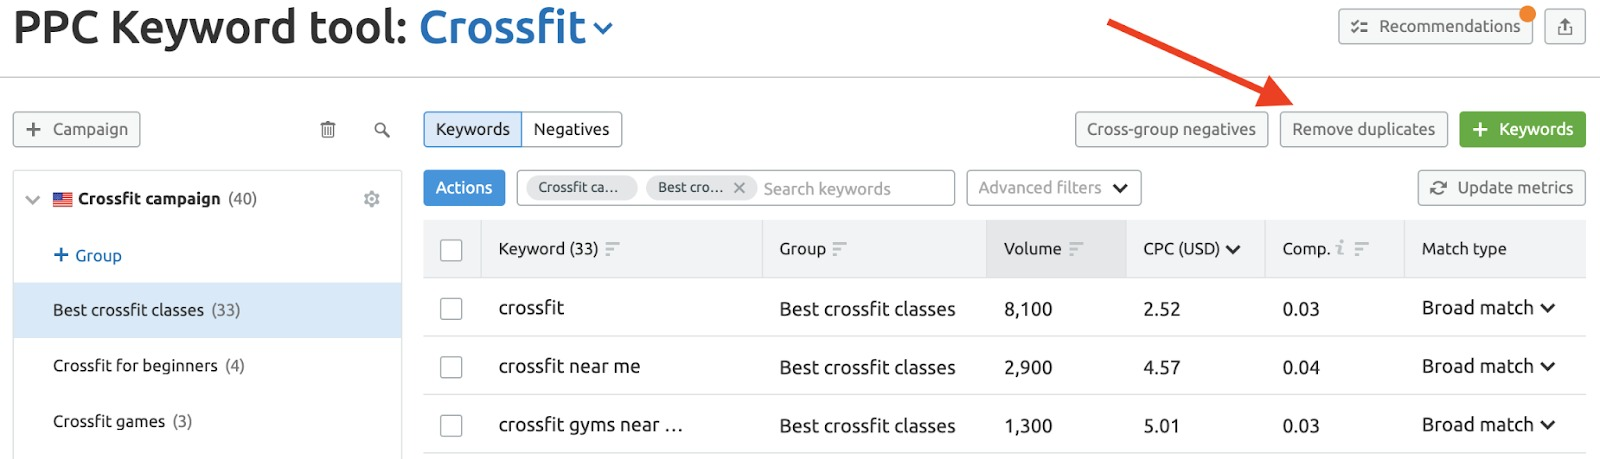 PPC Keyword Tool Recommendations image 7